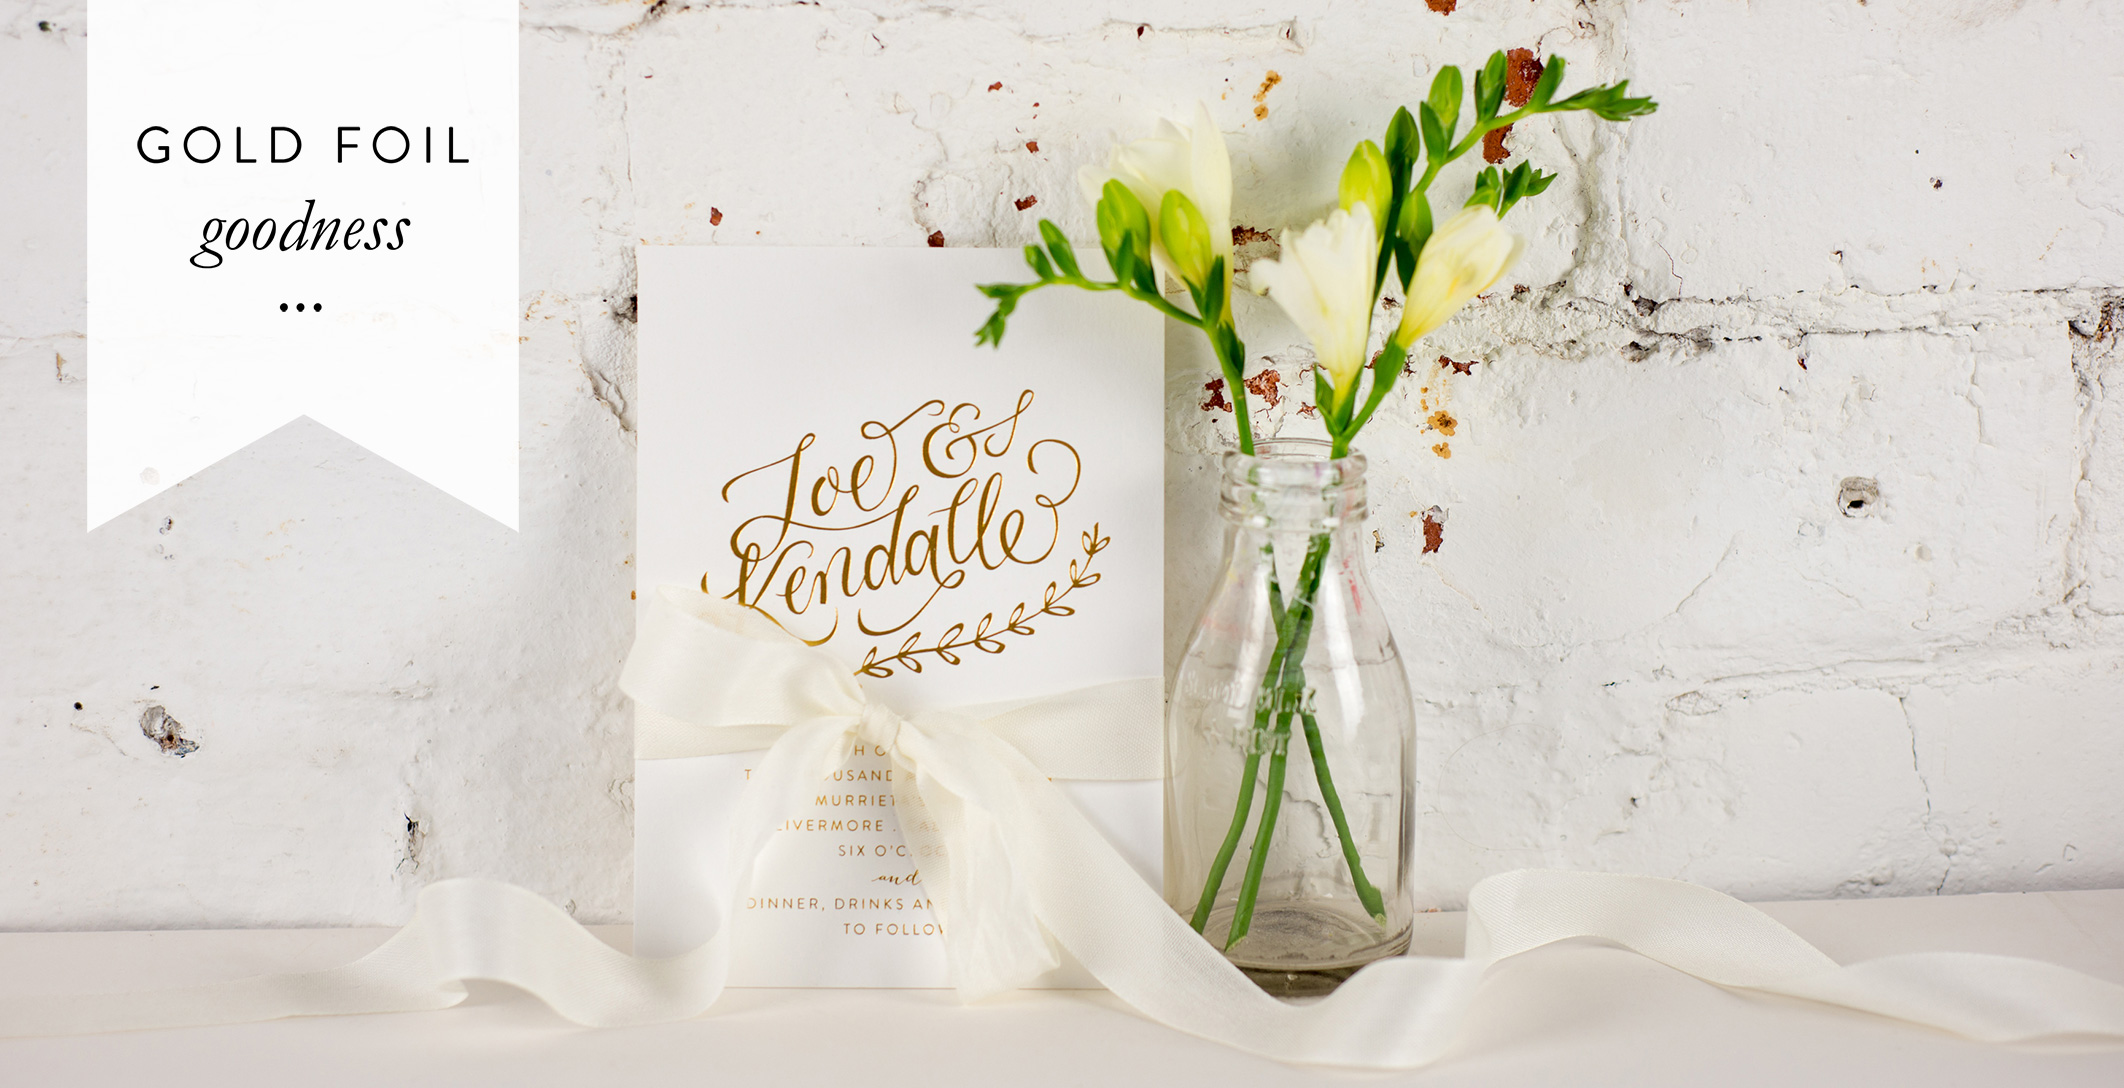 gold foil wedding invitations, stationery, stationary